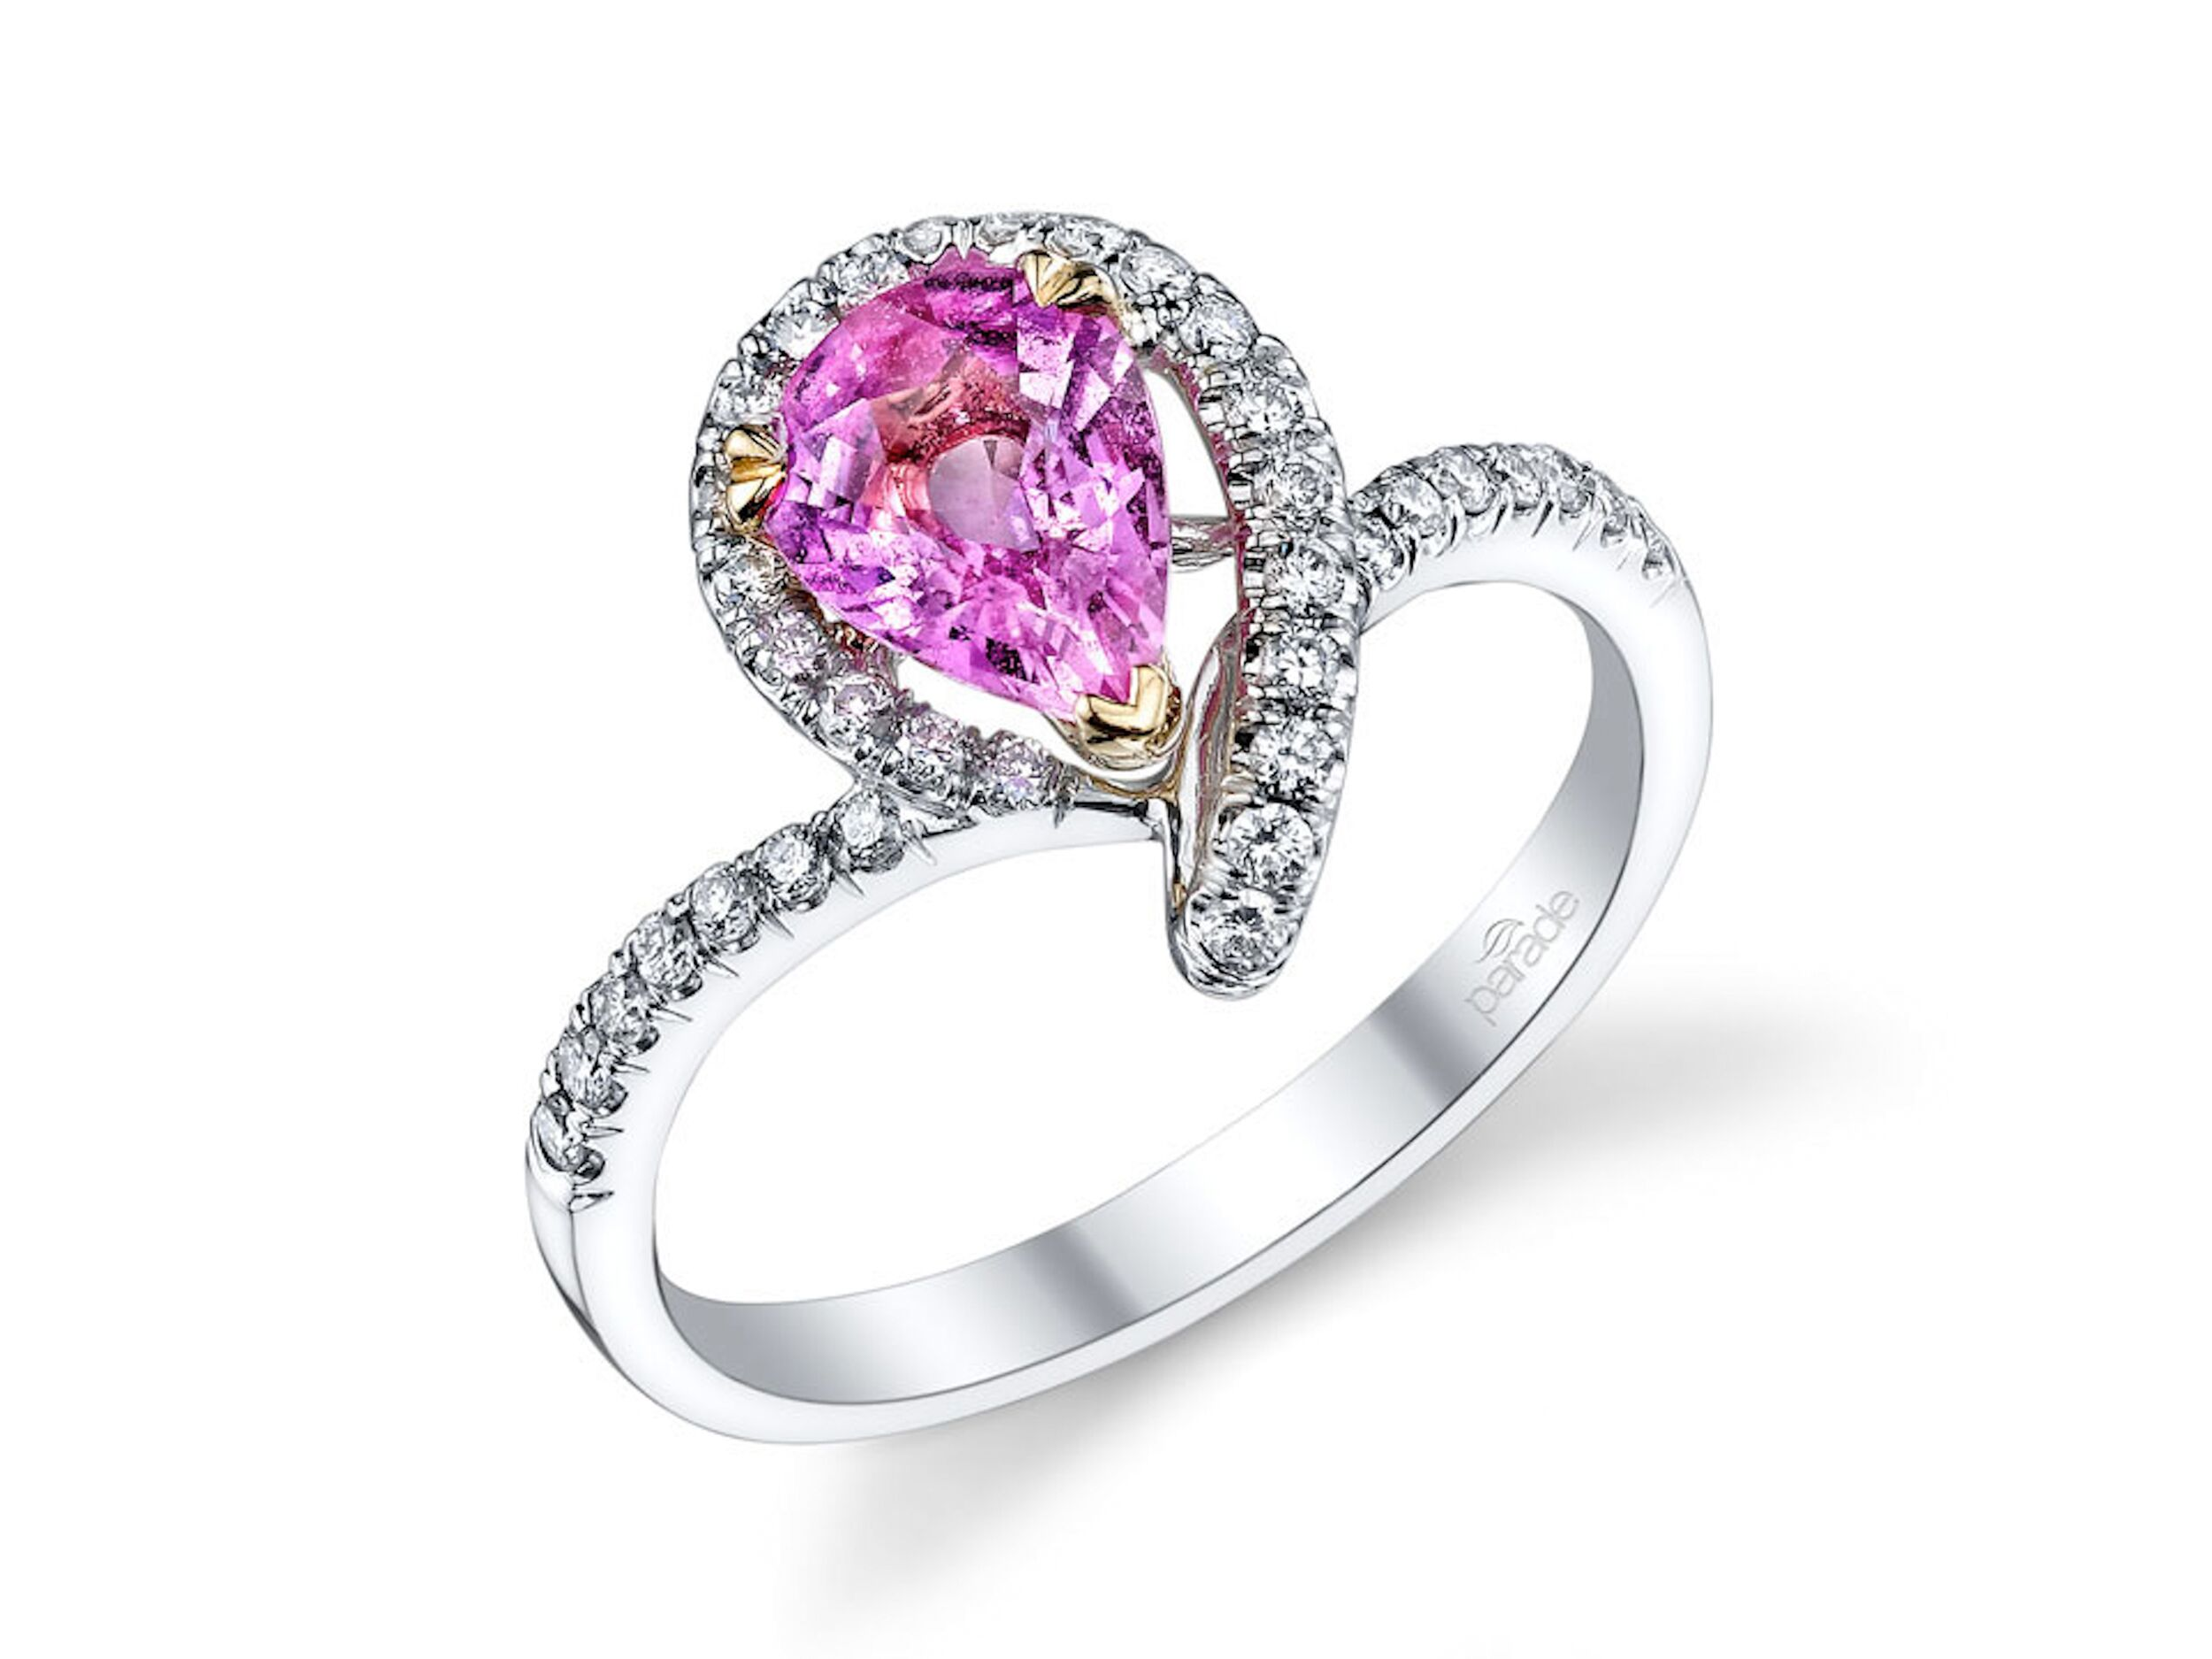 ring light diamonds rings with ritani are blog original surprise what halo engagement faq pink news